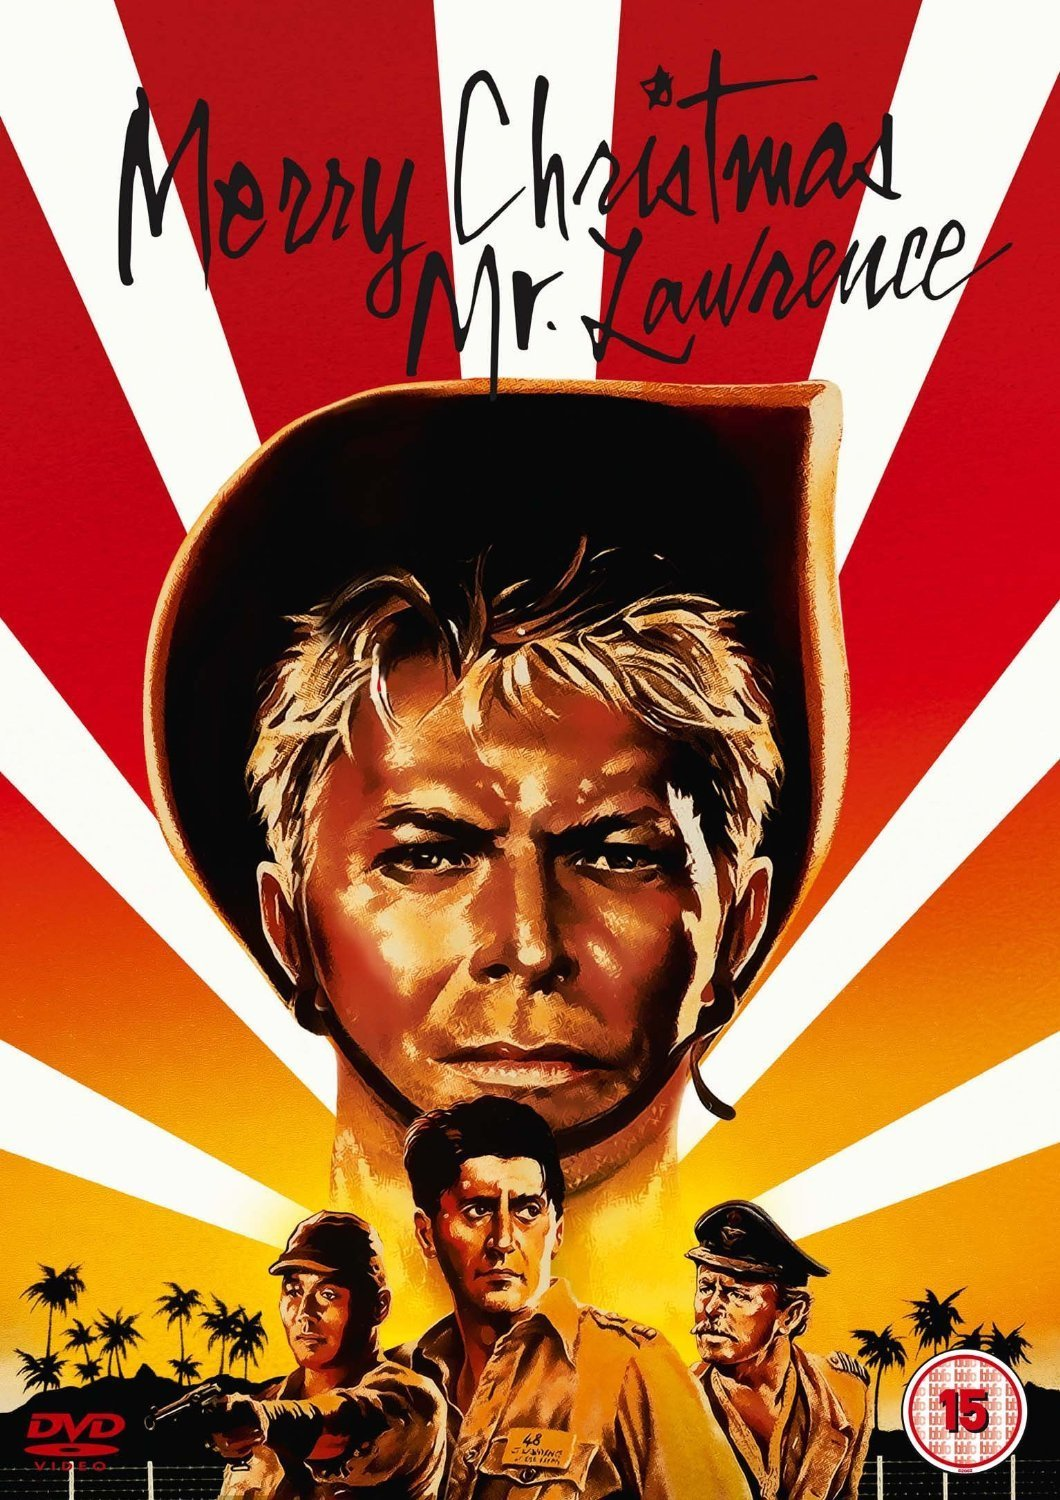 Amazoncom Merry Christmas Mr Lawrence DVD Movies  TV